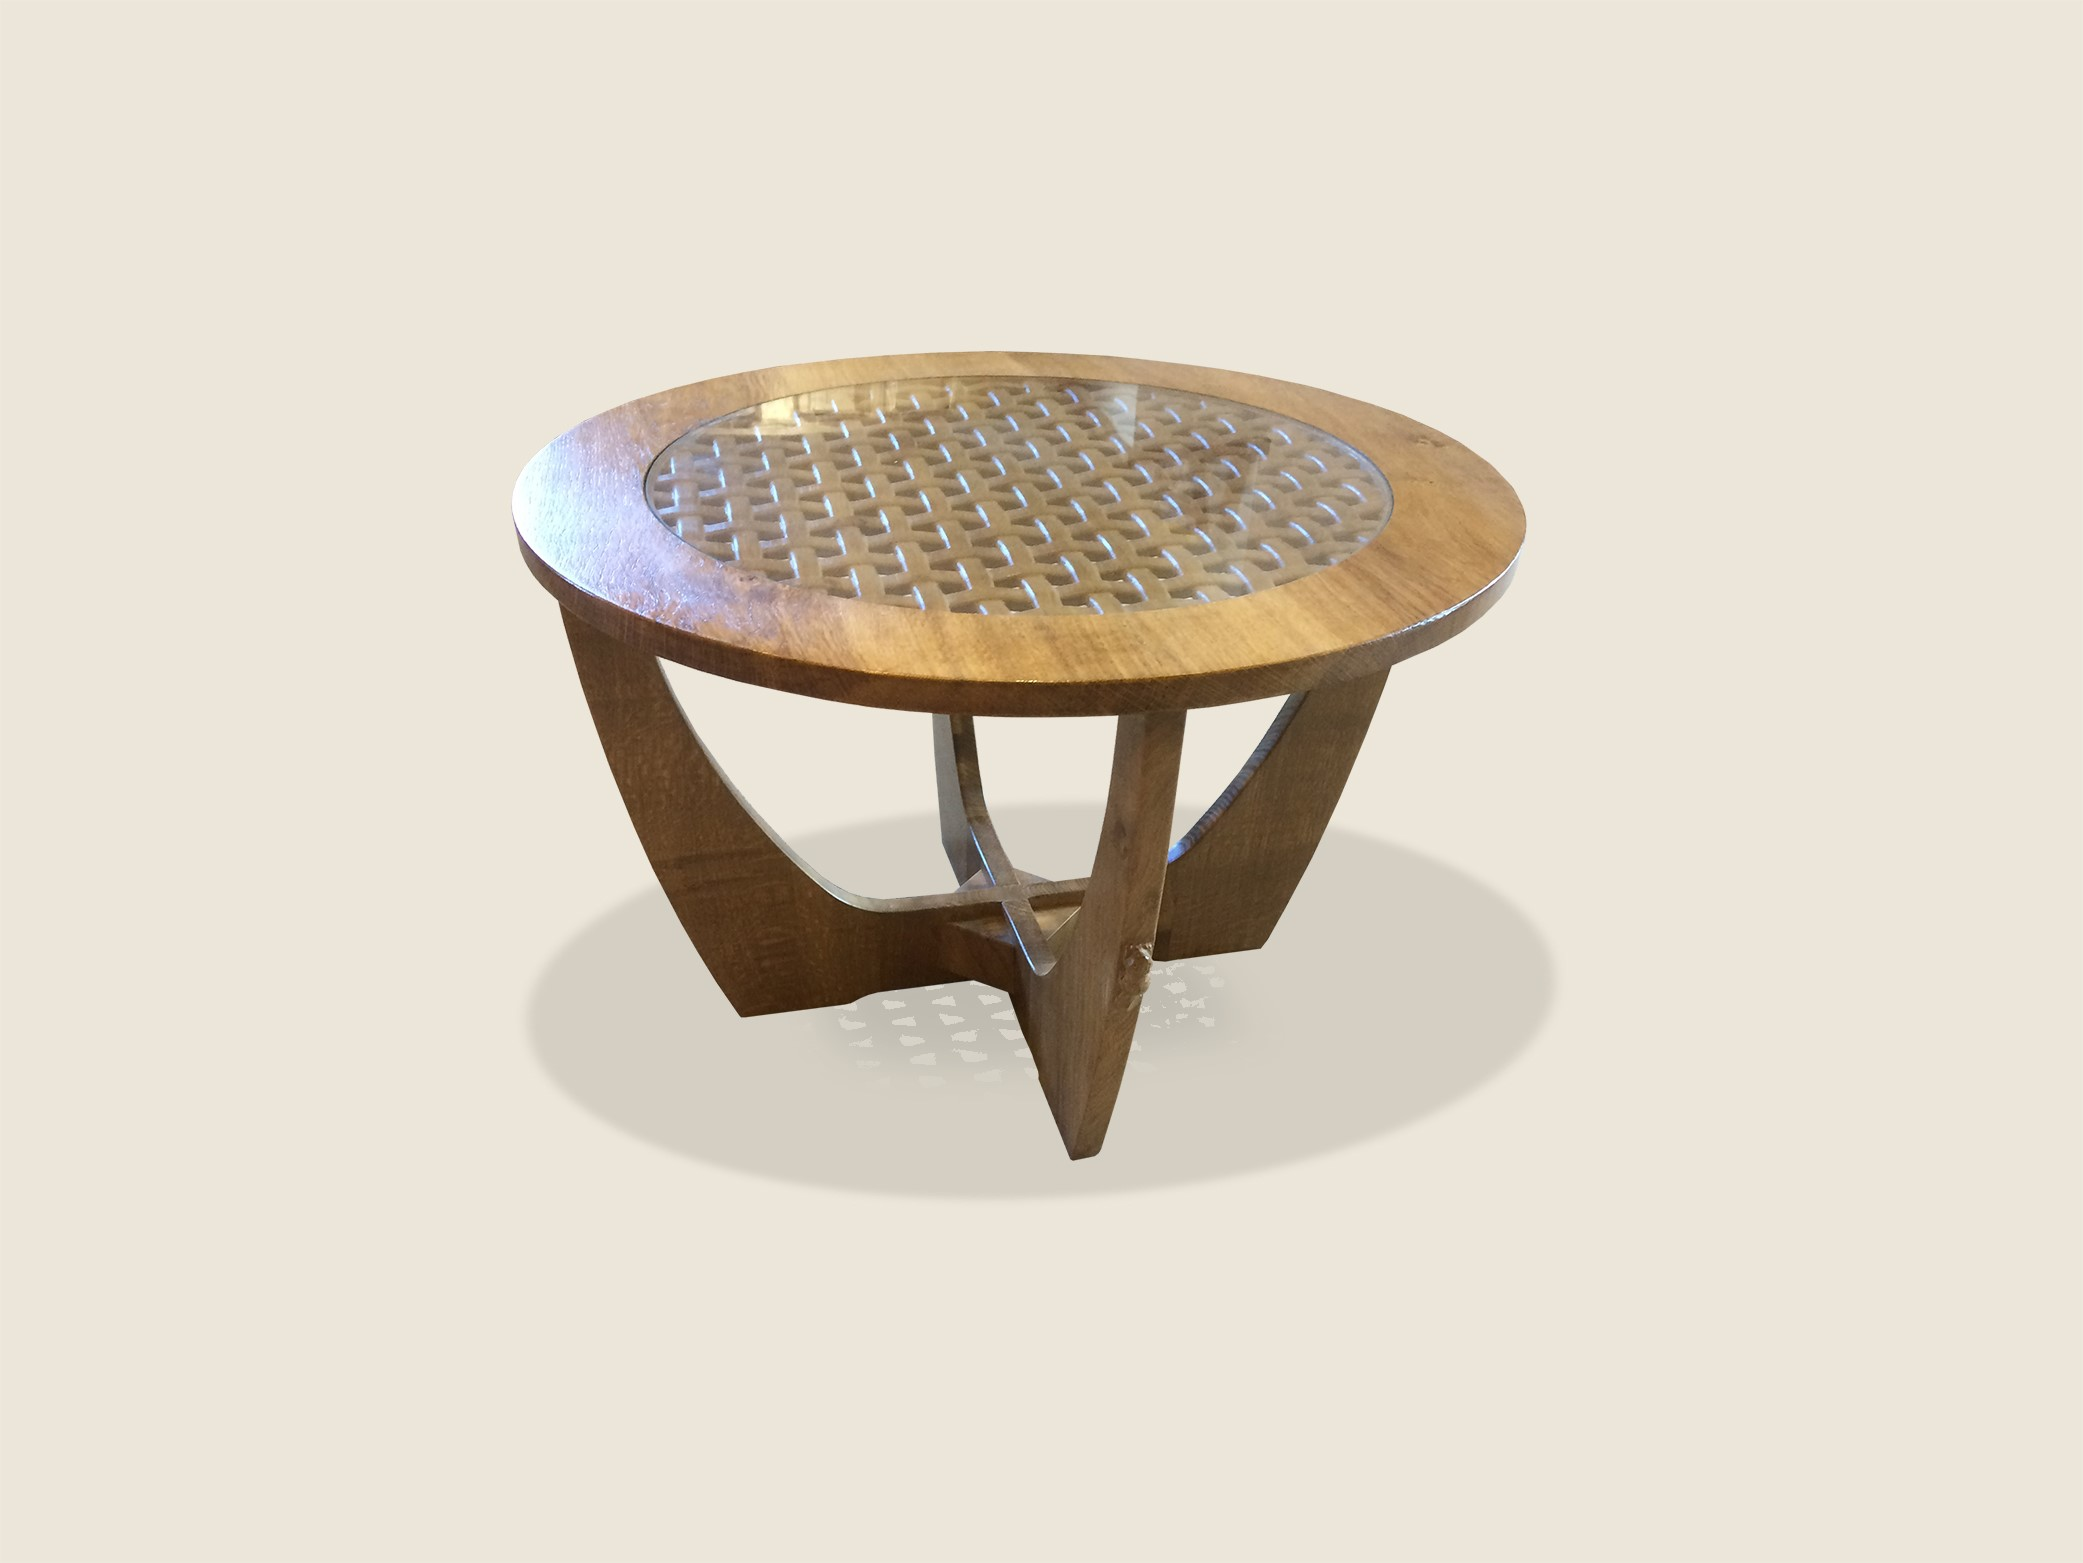 lattice-work-coffee-table-bespoke-oak-mouseman-style